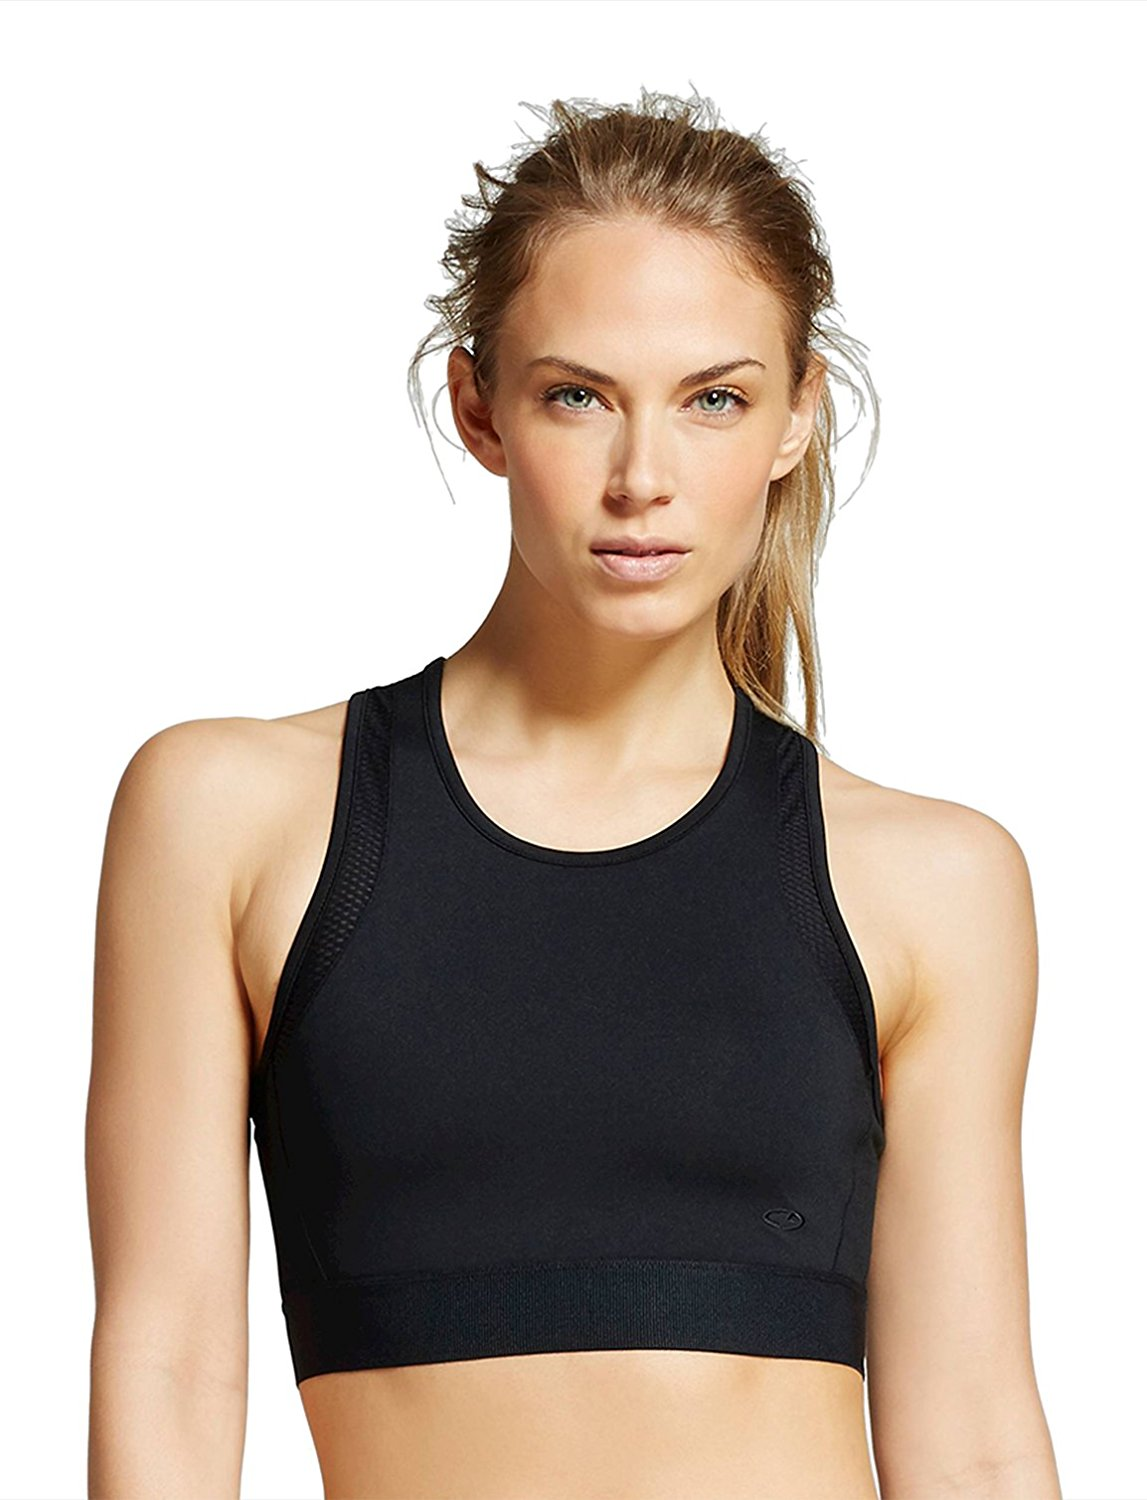 7b0ba9ae5b Get Quotations · C9 Champion Women s Strappy Back Sports Bra